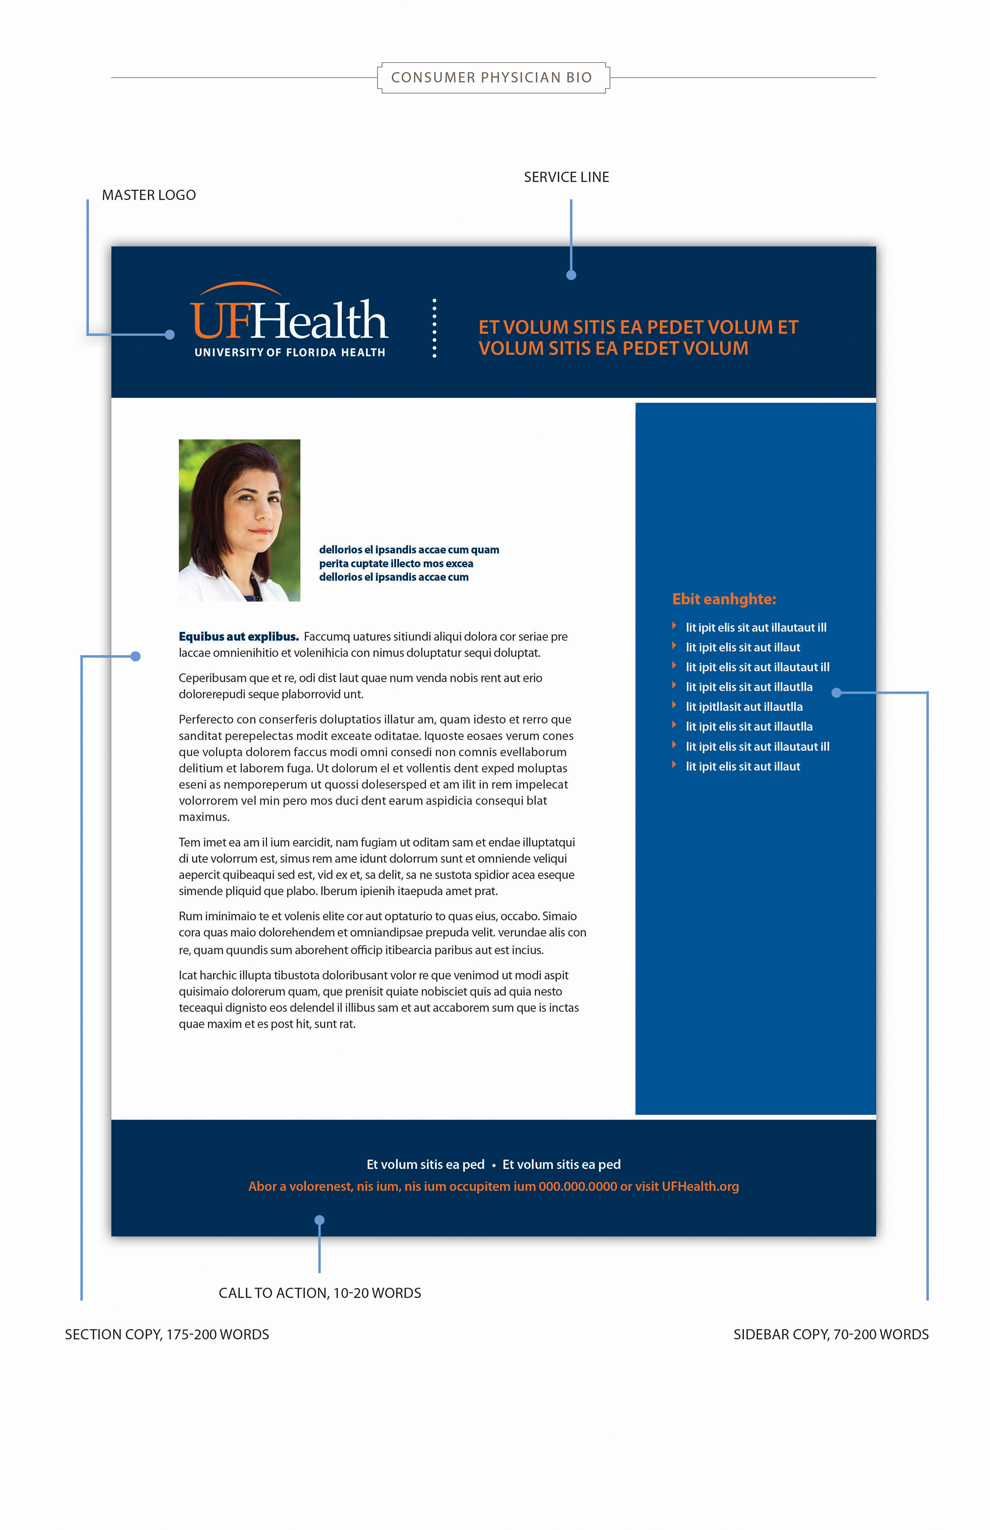 guidelines for the uf health brand look and feel